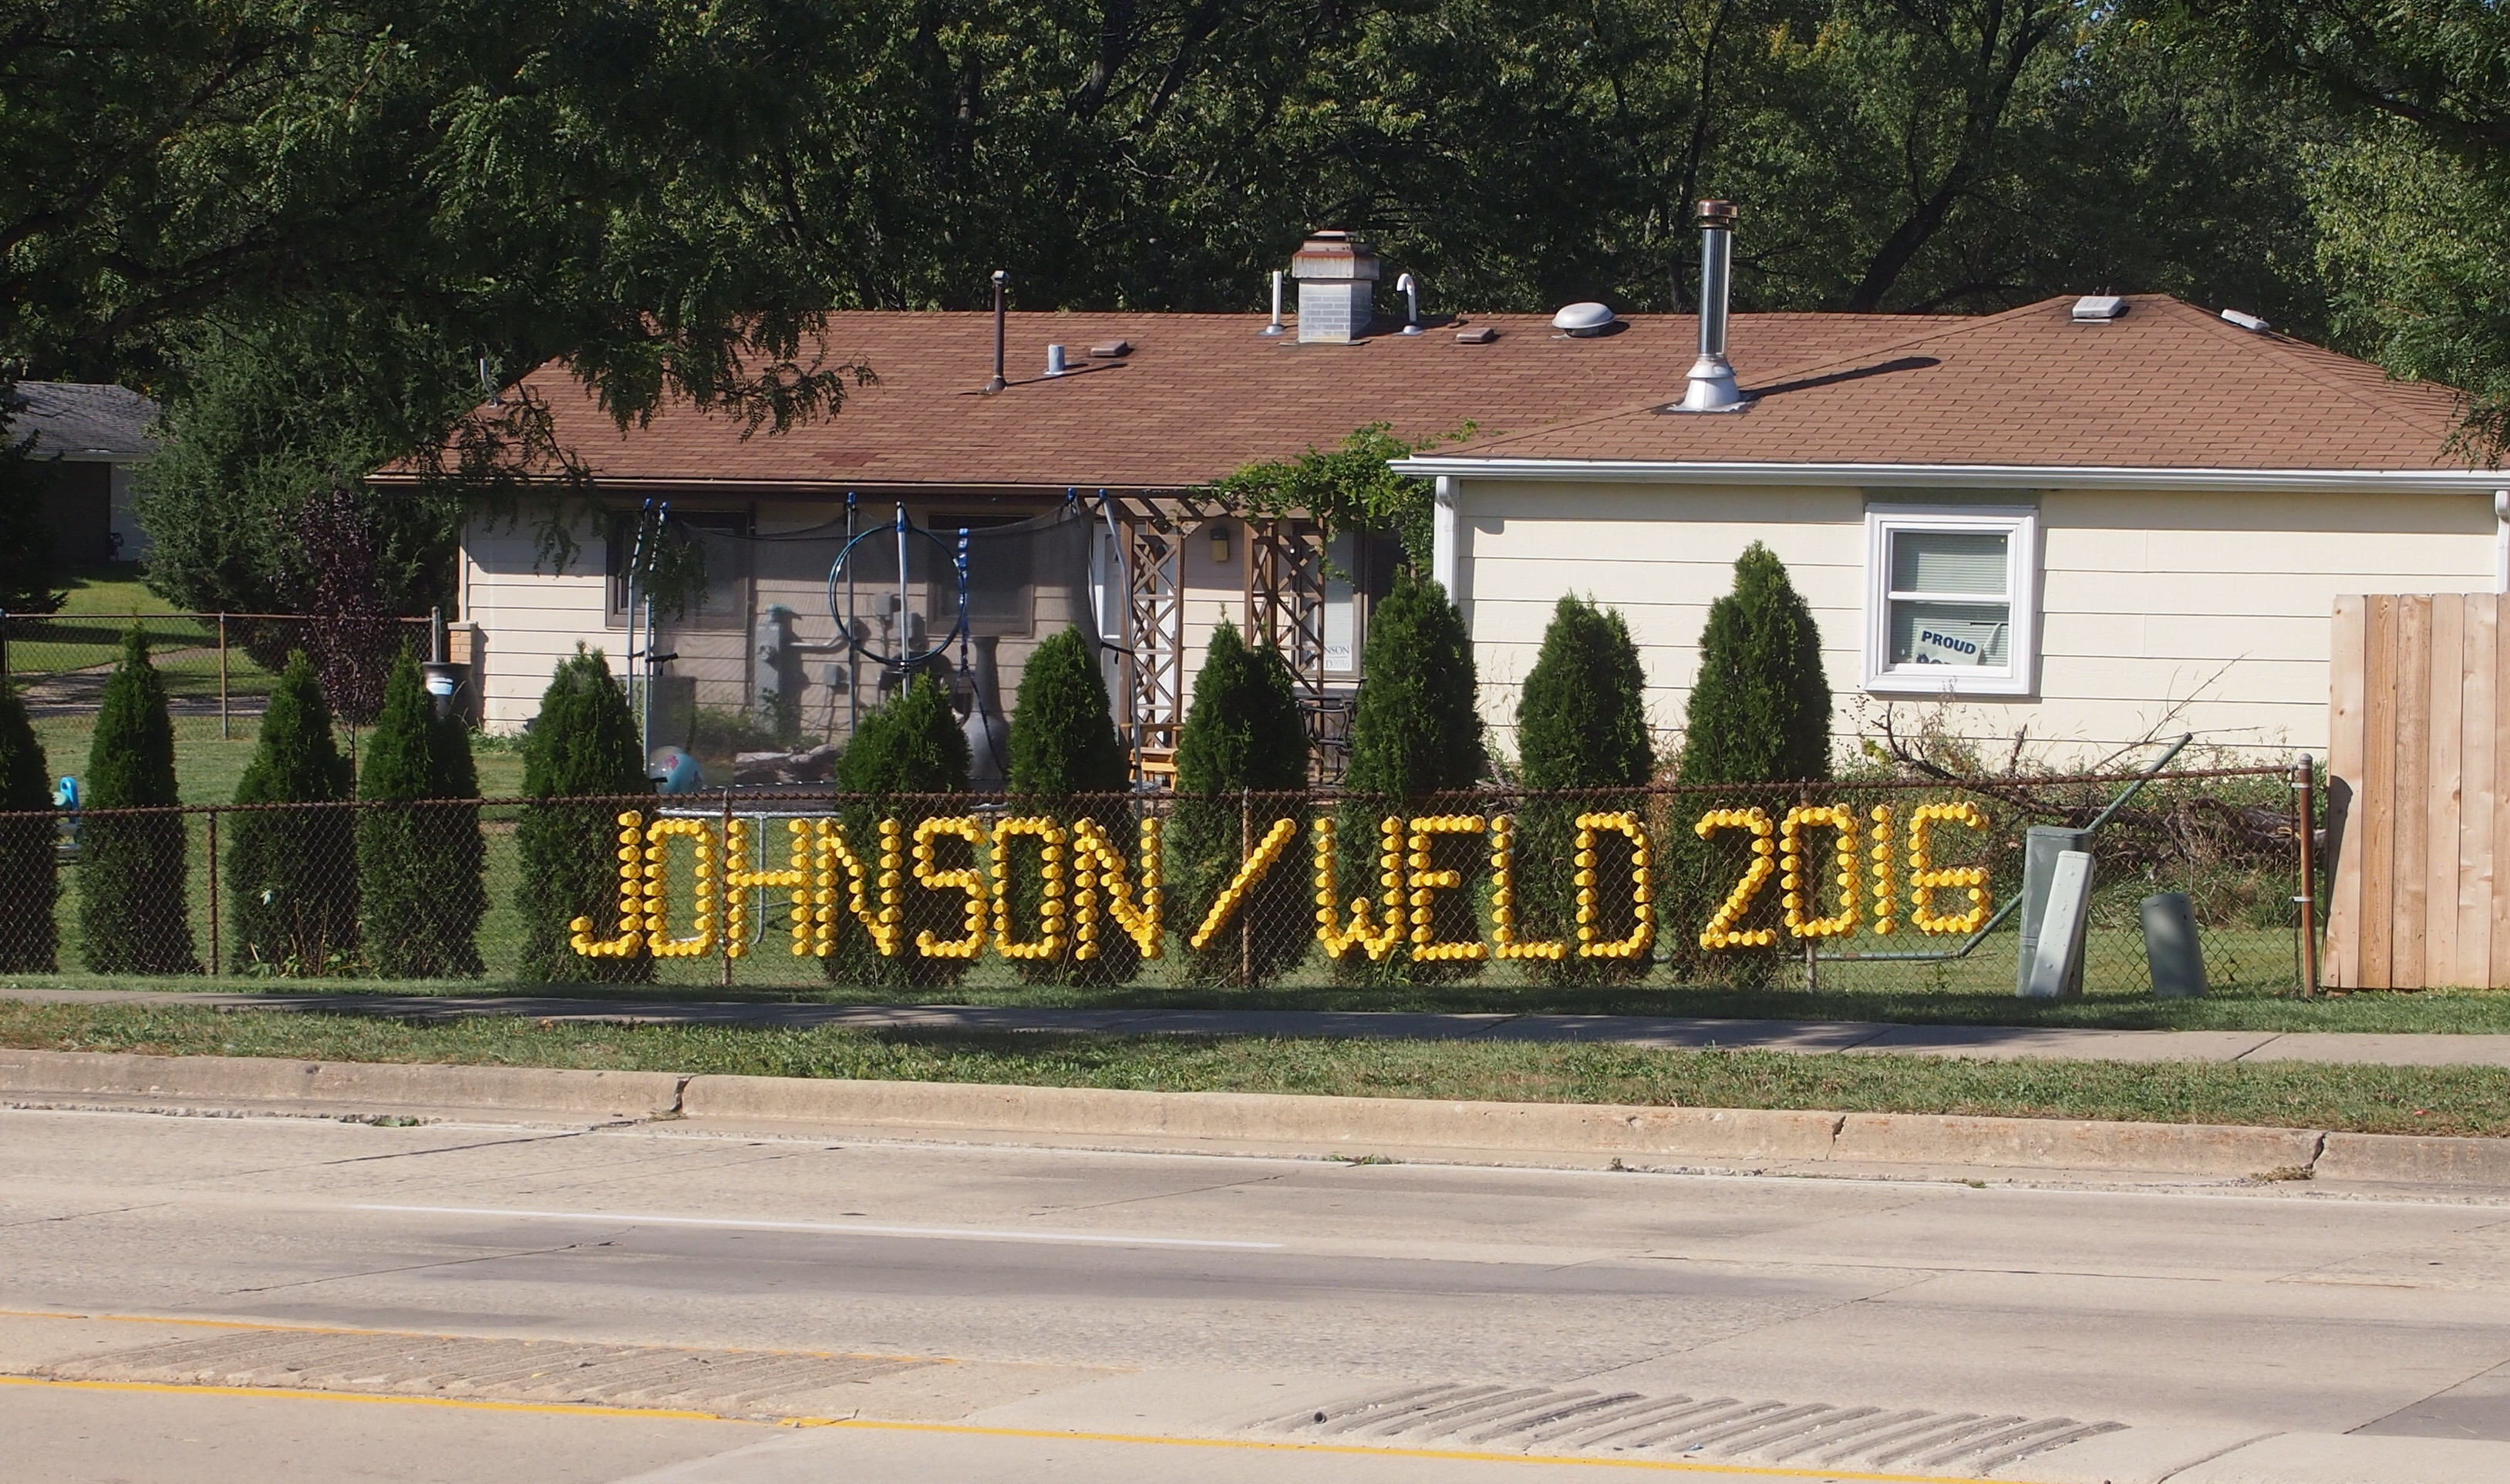 Gary Johnson Sign made of yellow cups